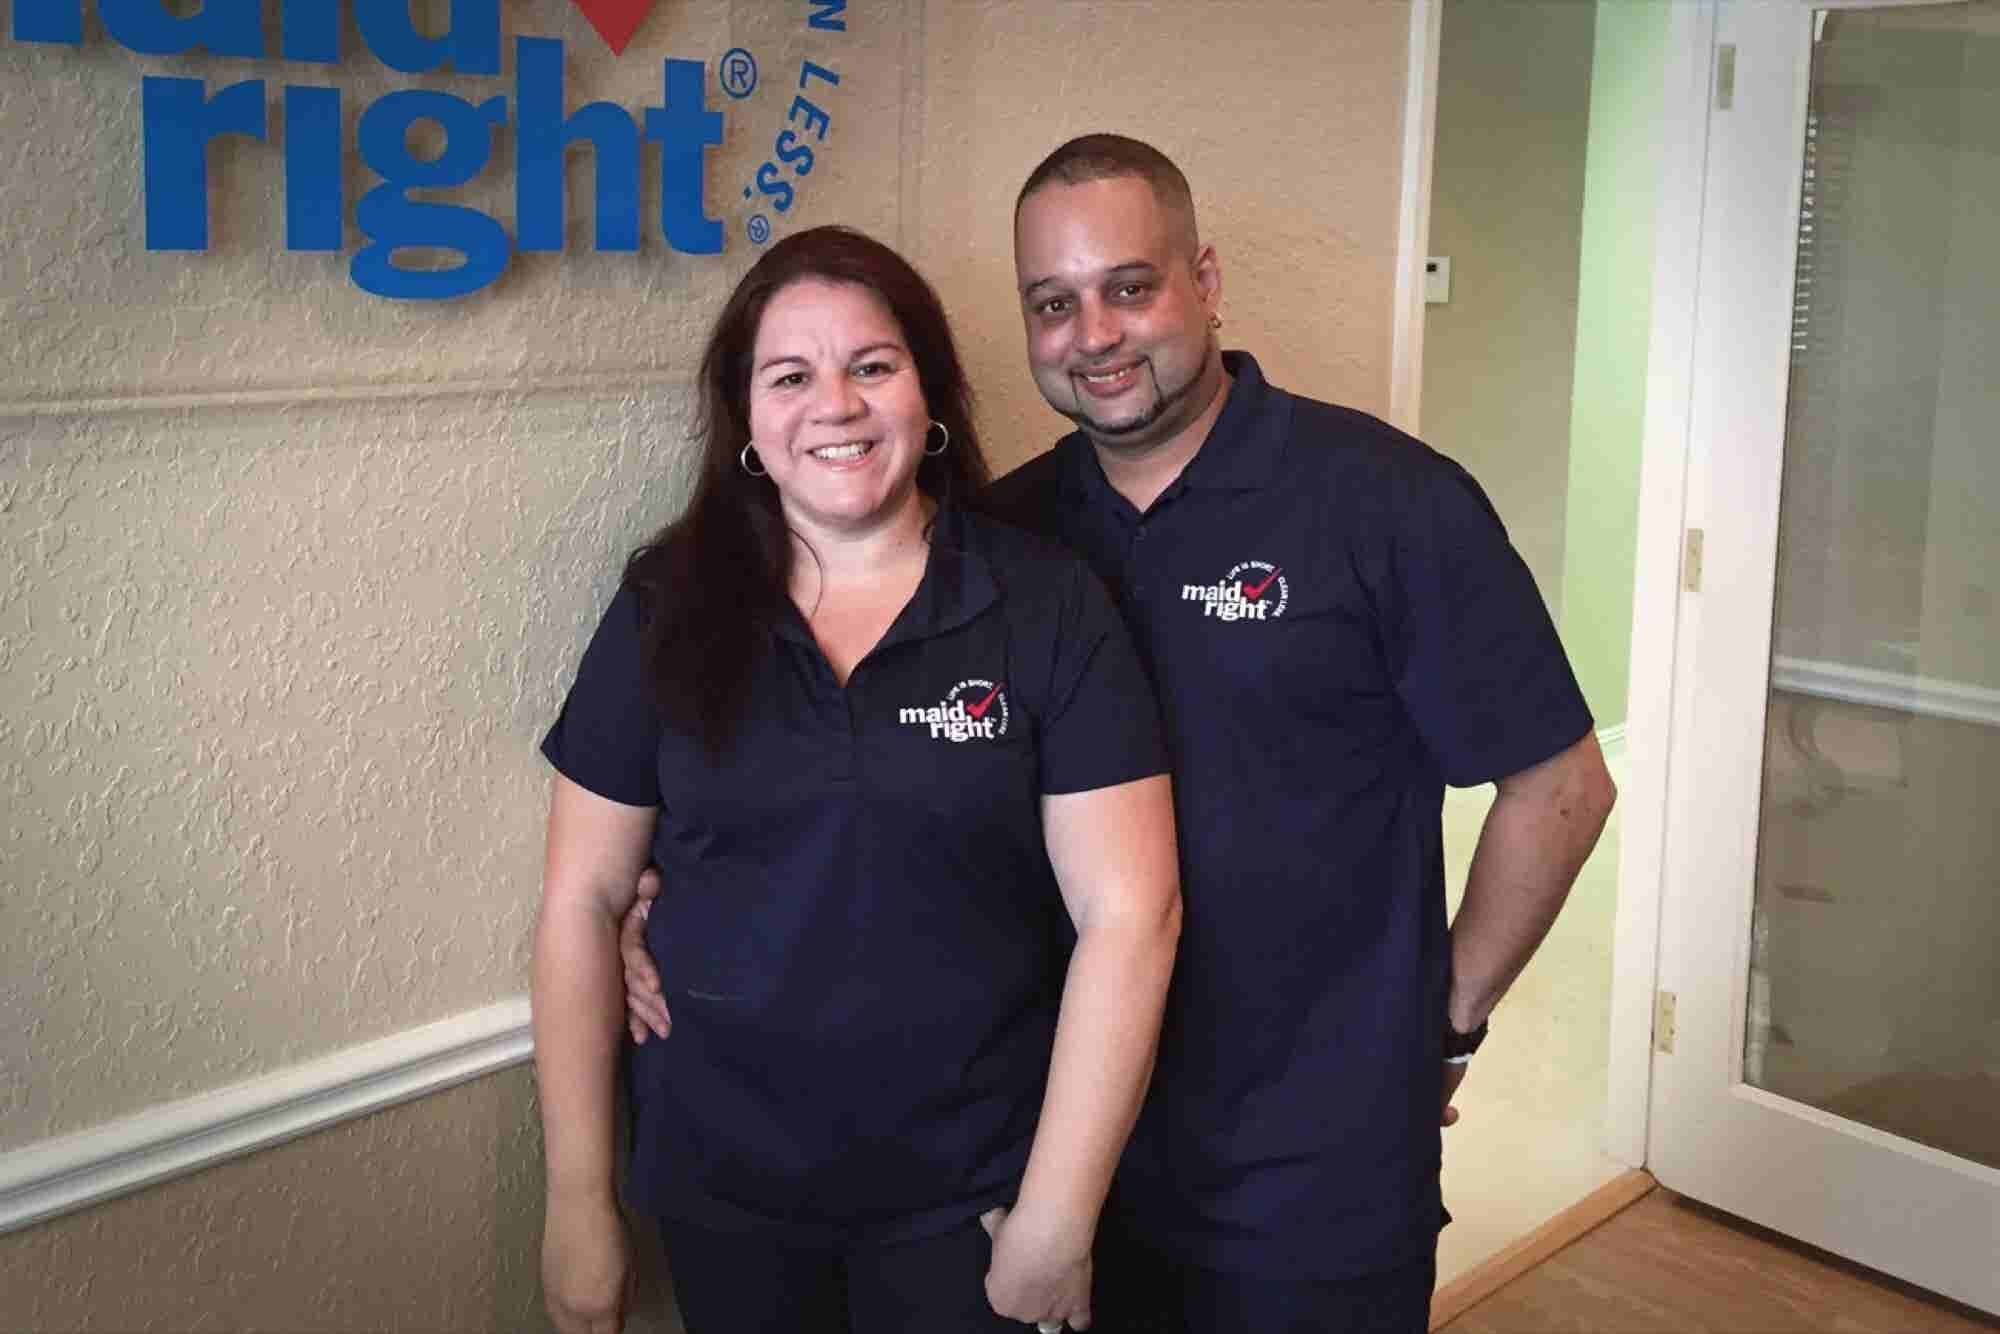 First-Time Franchisees Bring Industry Expertise to Their New Venture